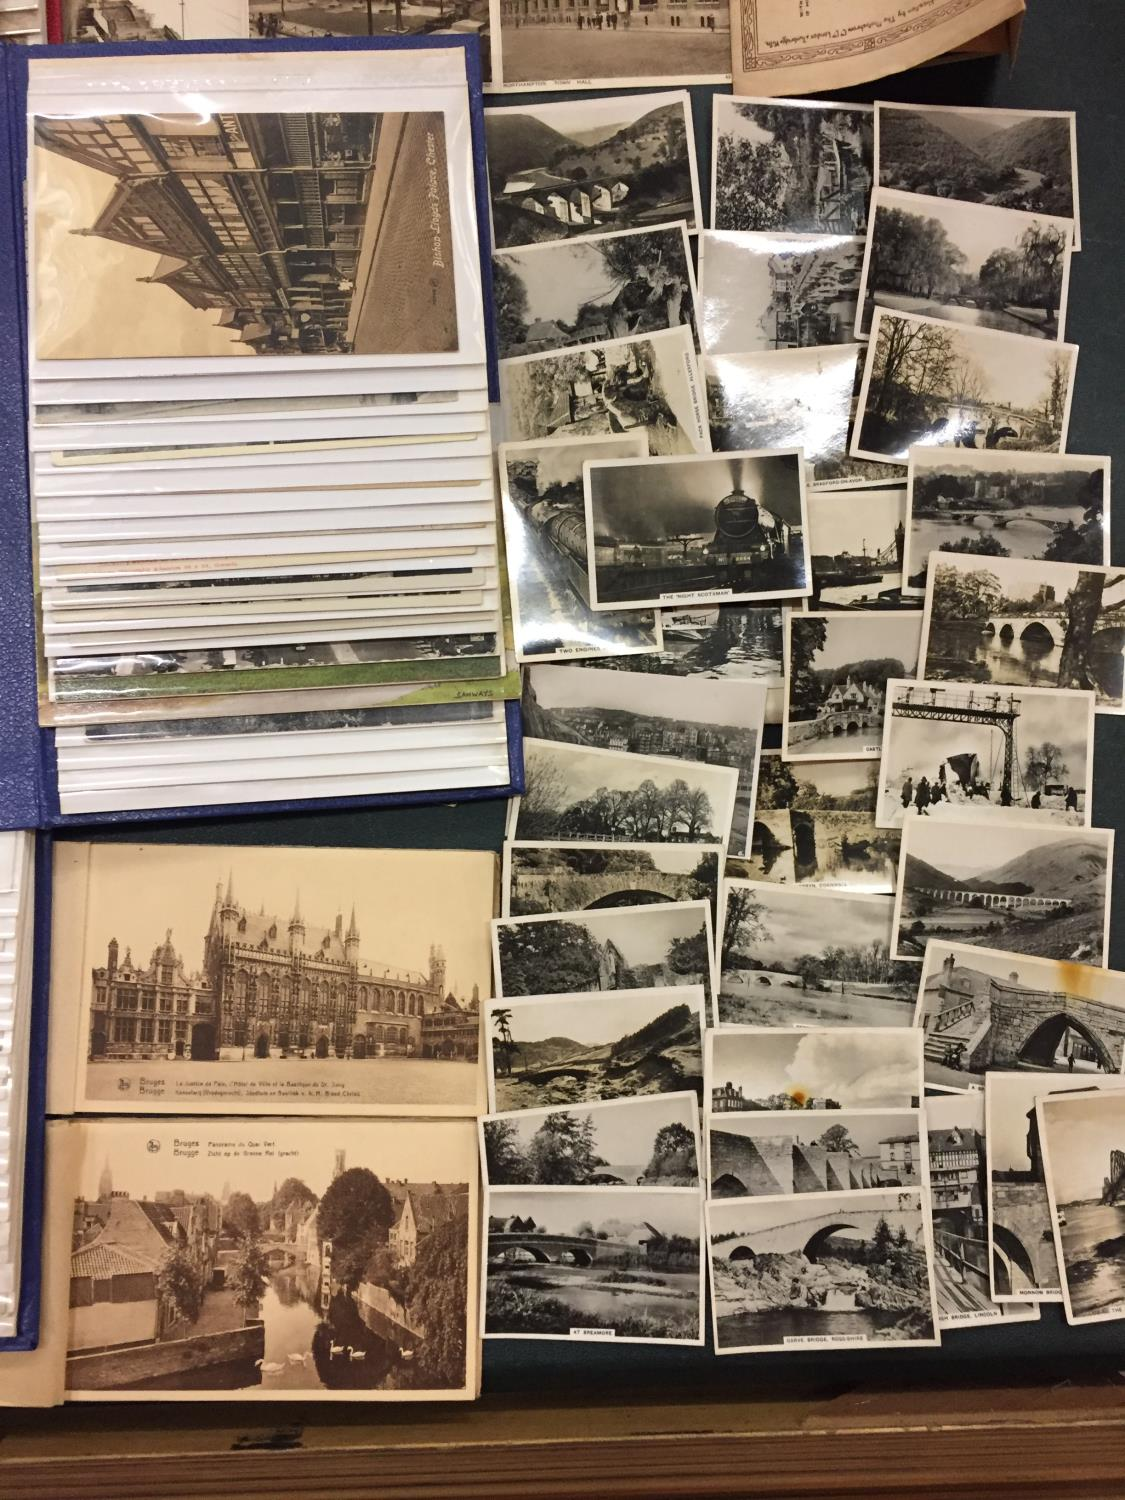 A LARGE COLLECTION OF 550+ ANTIQUE AND VINTAGE POSTCARDS RANGING FROM 1908-1970'S. MAINLEY UK - SOME - Image 11 of 14